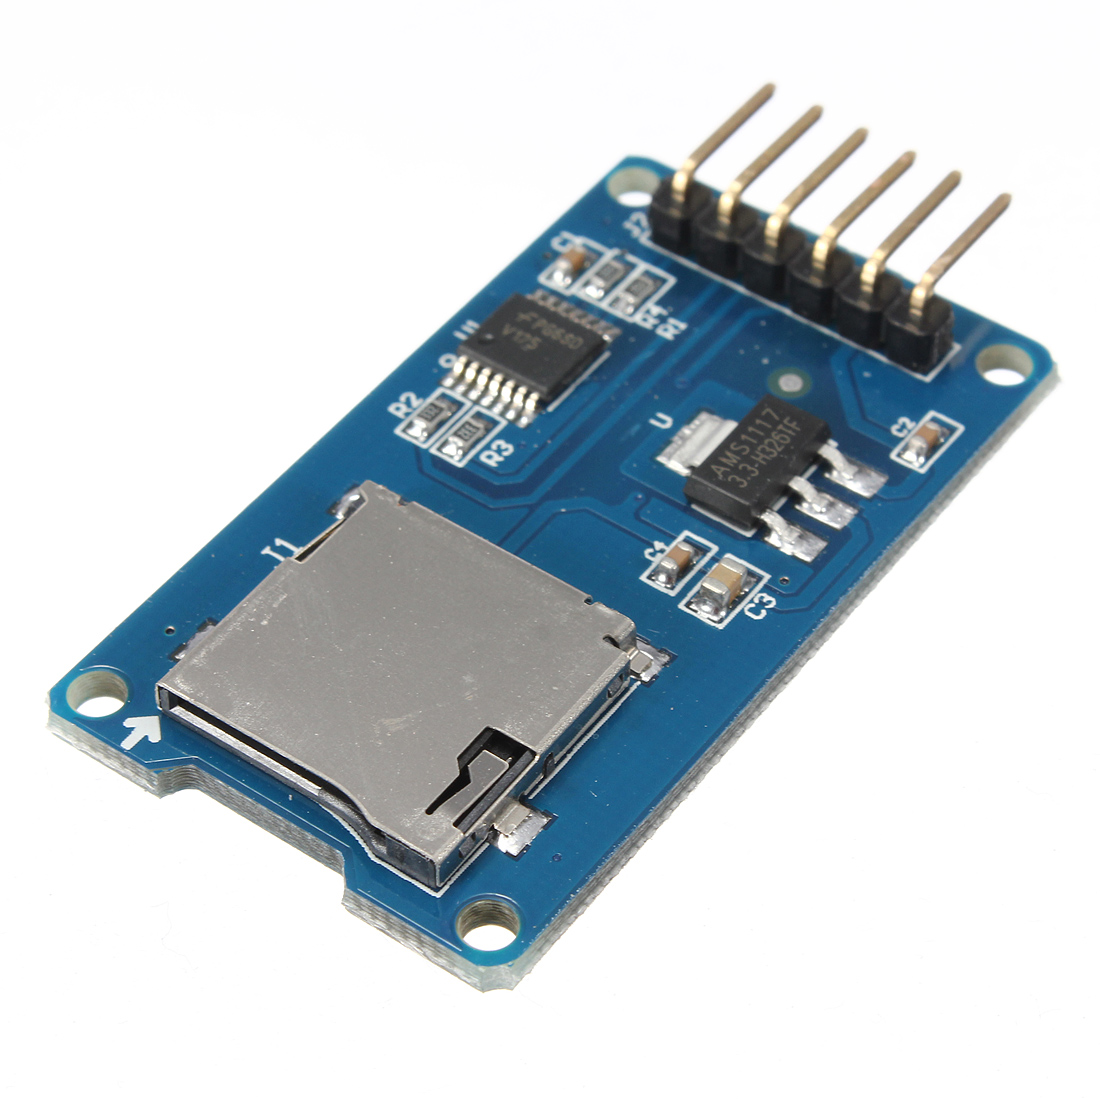 10Micro TF Card Memory Shield Module SPI Micro Storage Card Adapter For Arduino, Eachine1, Module Board For Arduino  - buy with discount